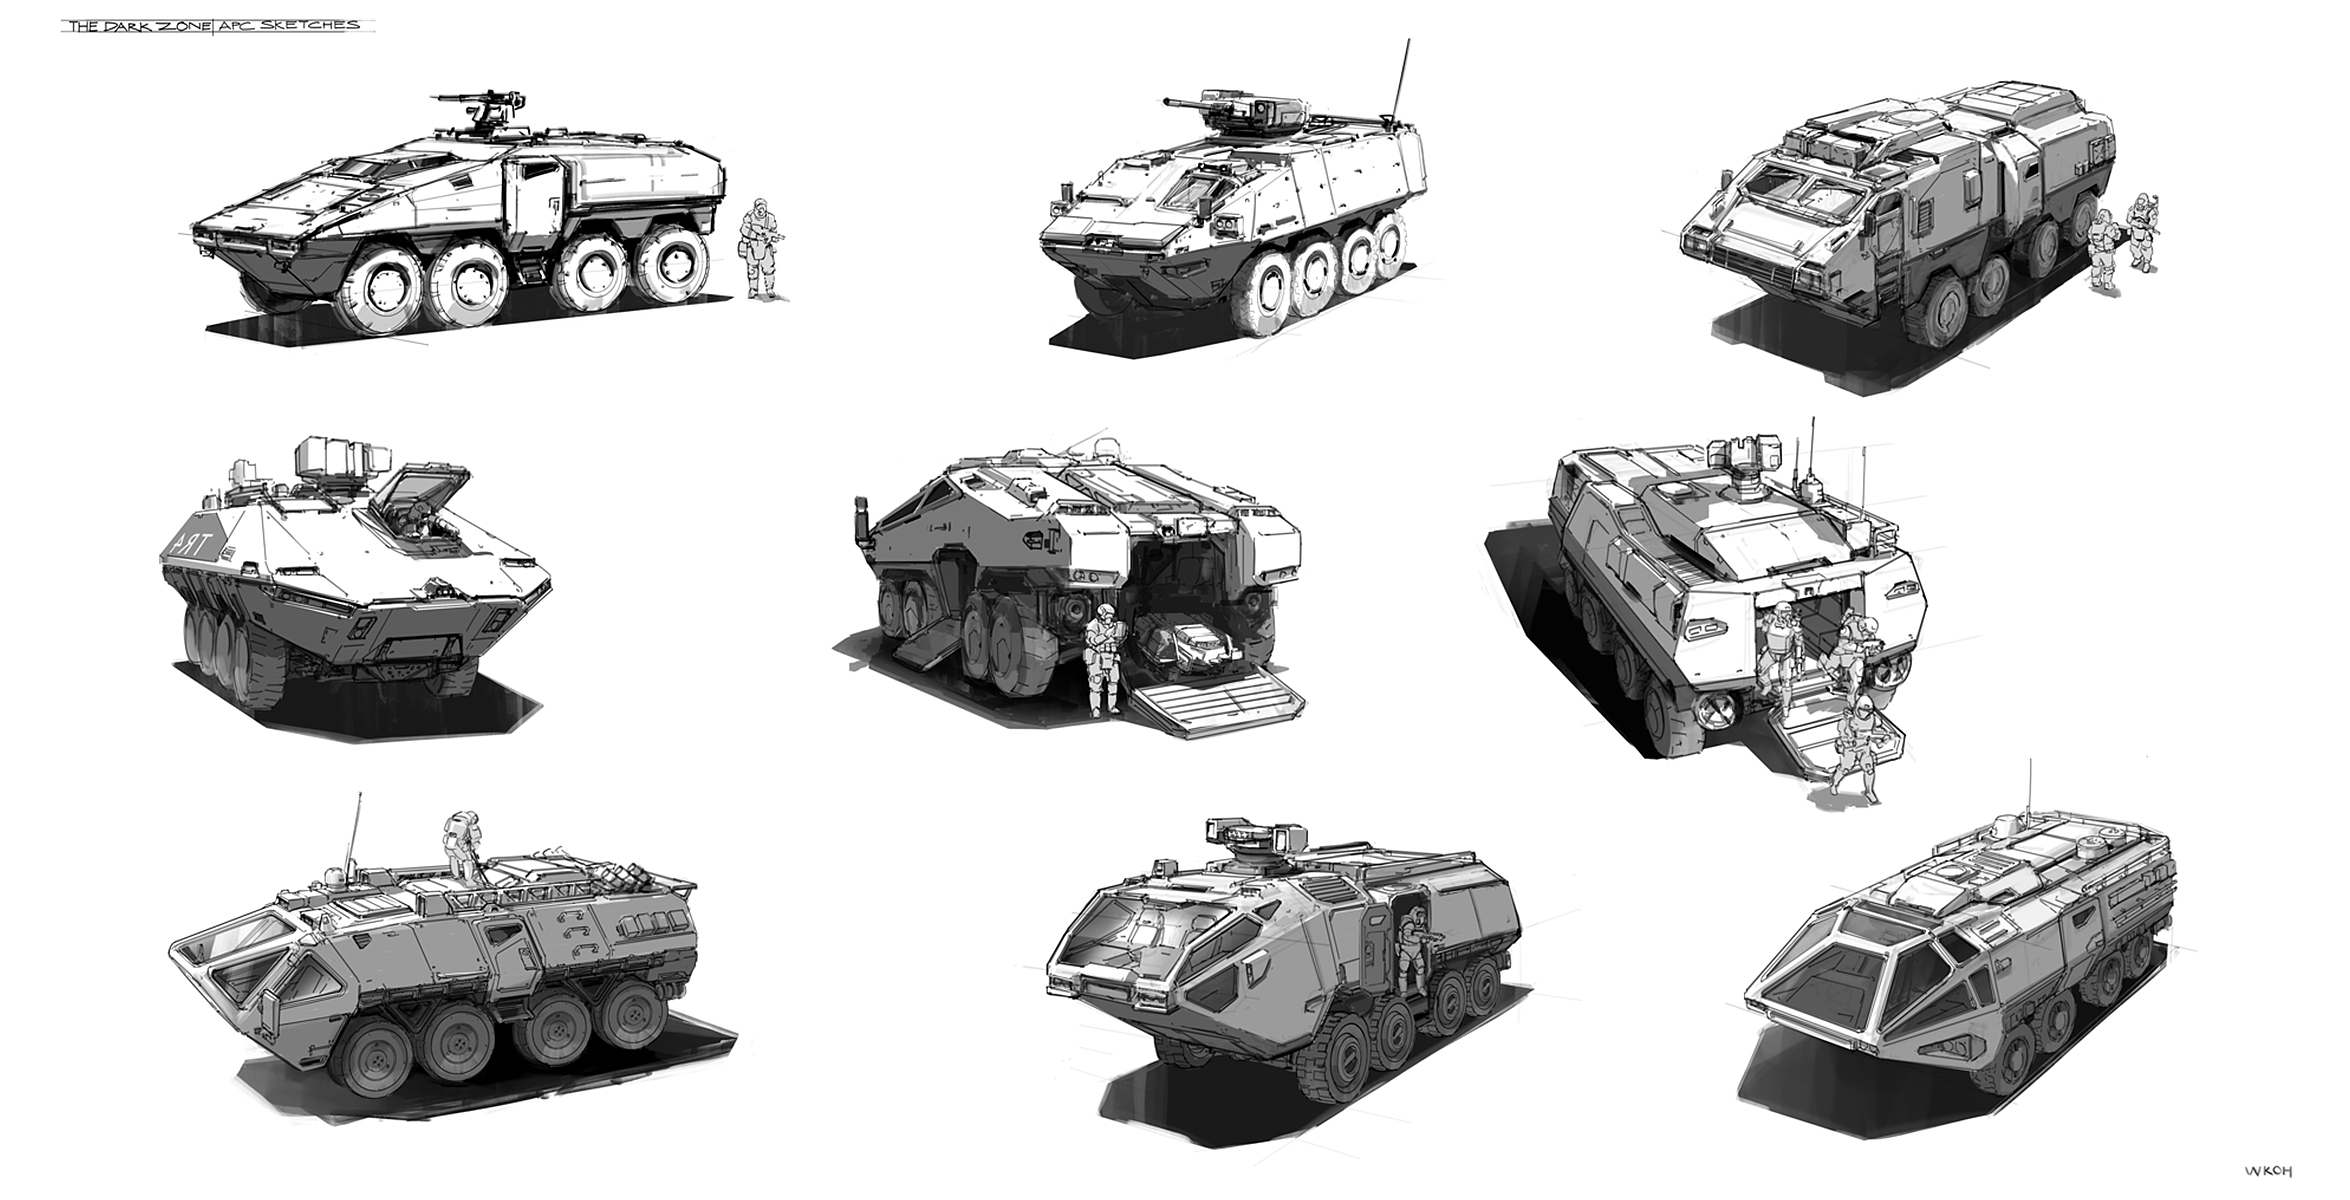 williamkoh_dz_09_sketches.jpg